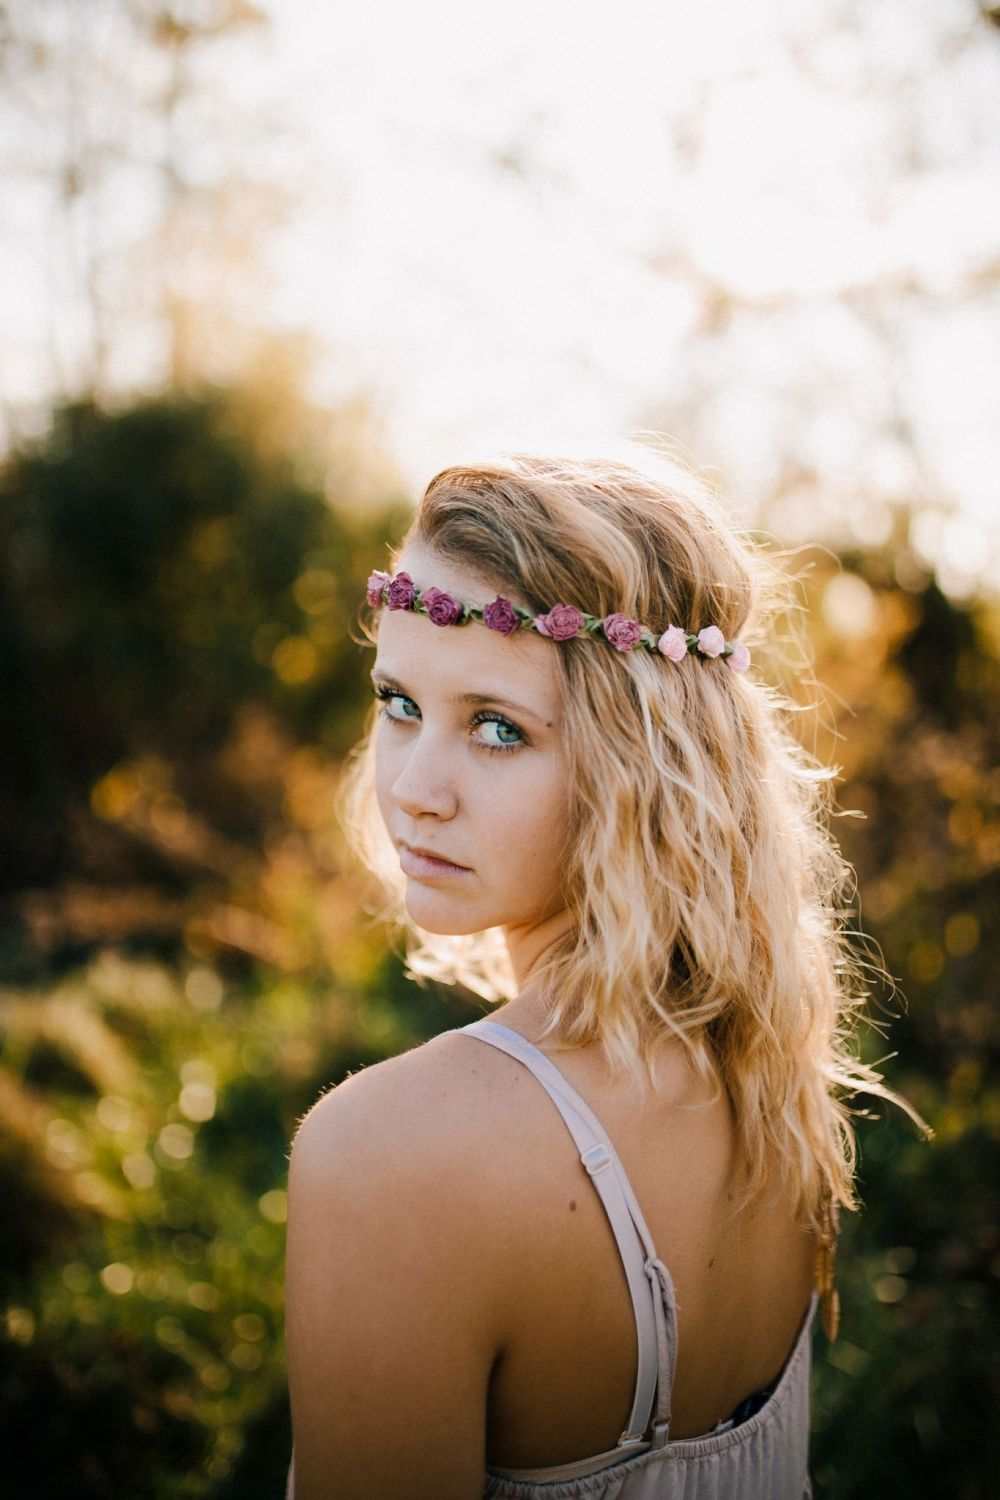 wellsburg senior personals Meet the love of your life w/ our trusted dating site we connect west virginia singles based on 29 dimensions of compatibility for lasting relationships.